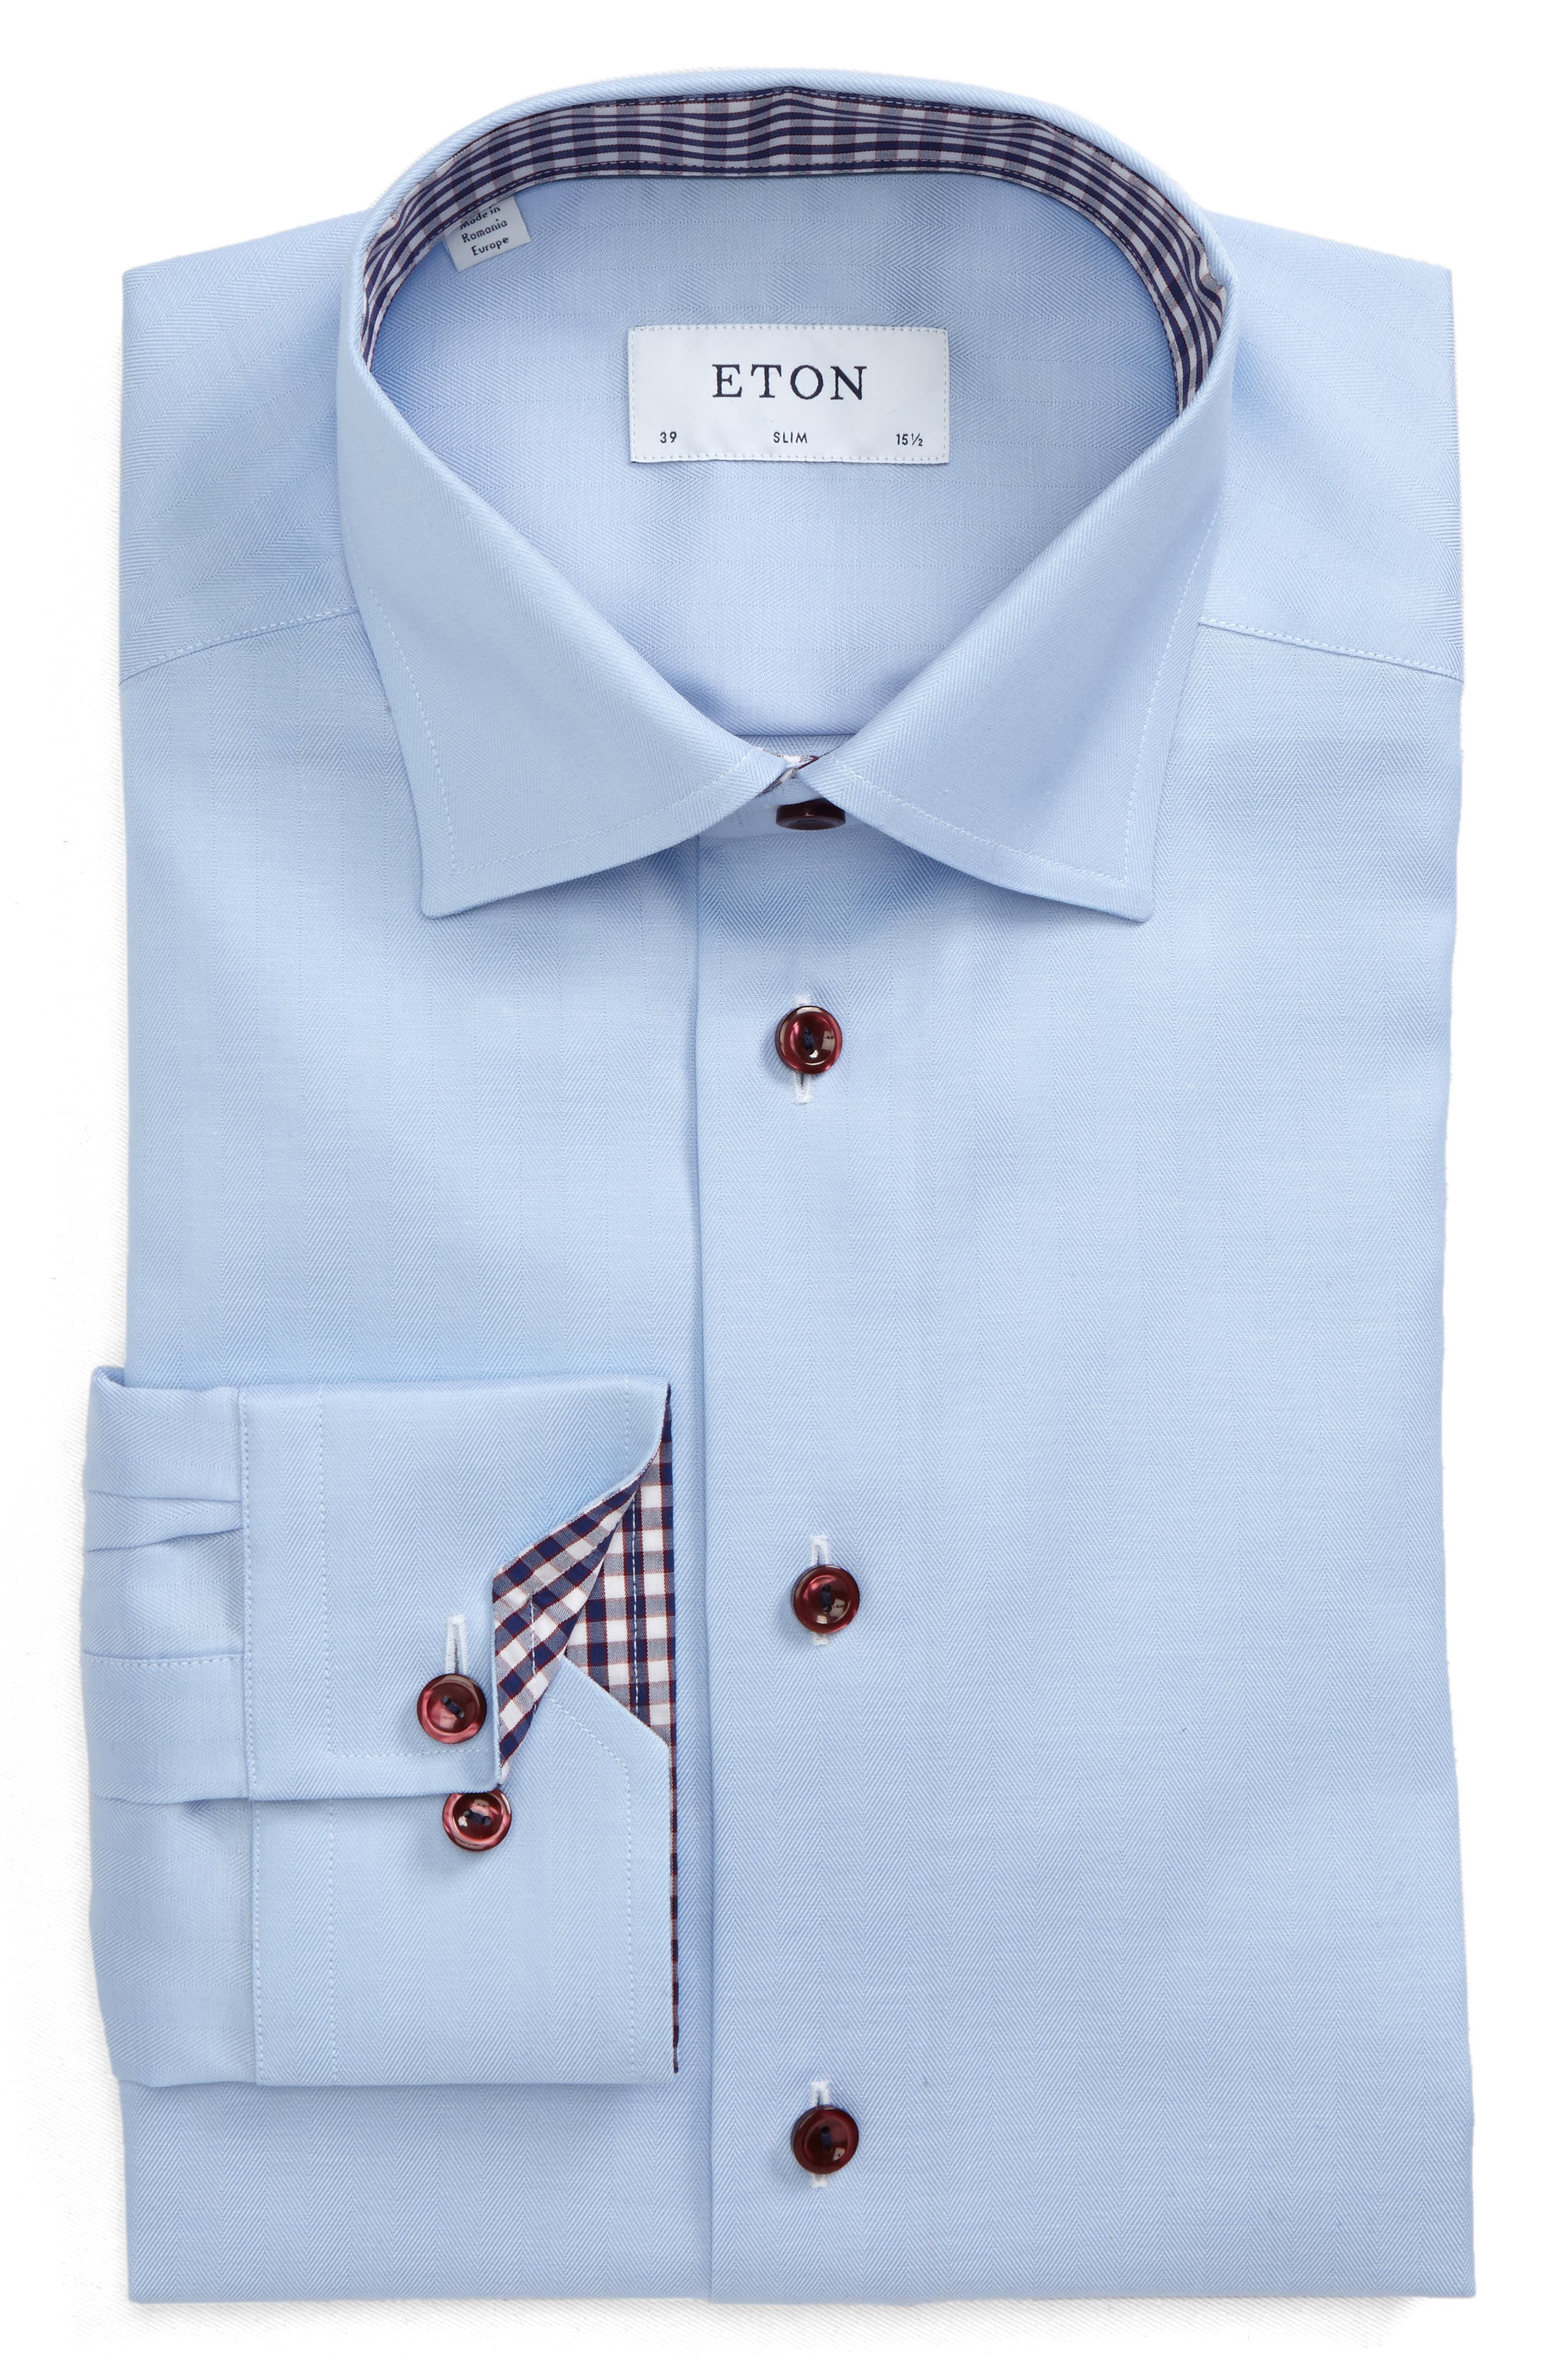 Signature Slim Fit Solid Twill Dress Shirt,                             Main thumbnail 1, color,                             400